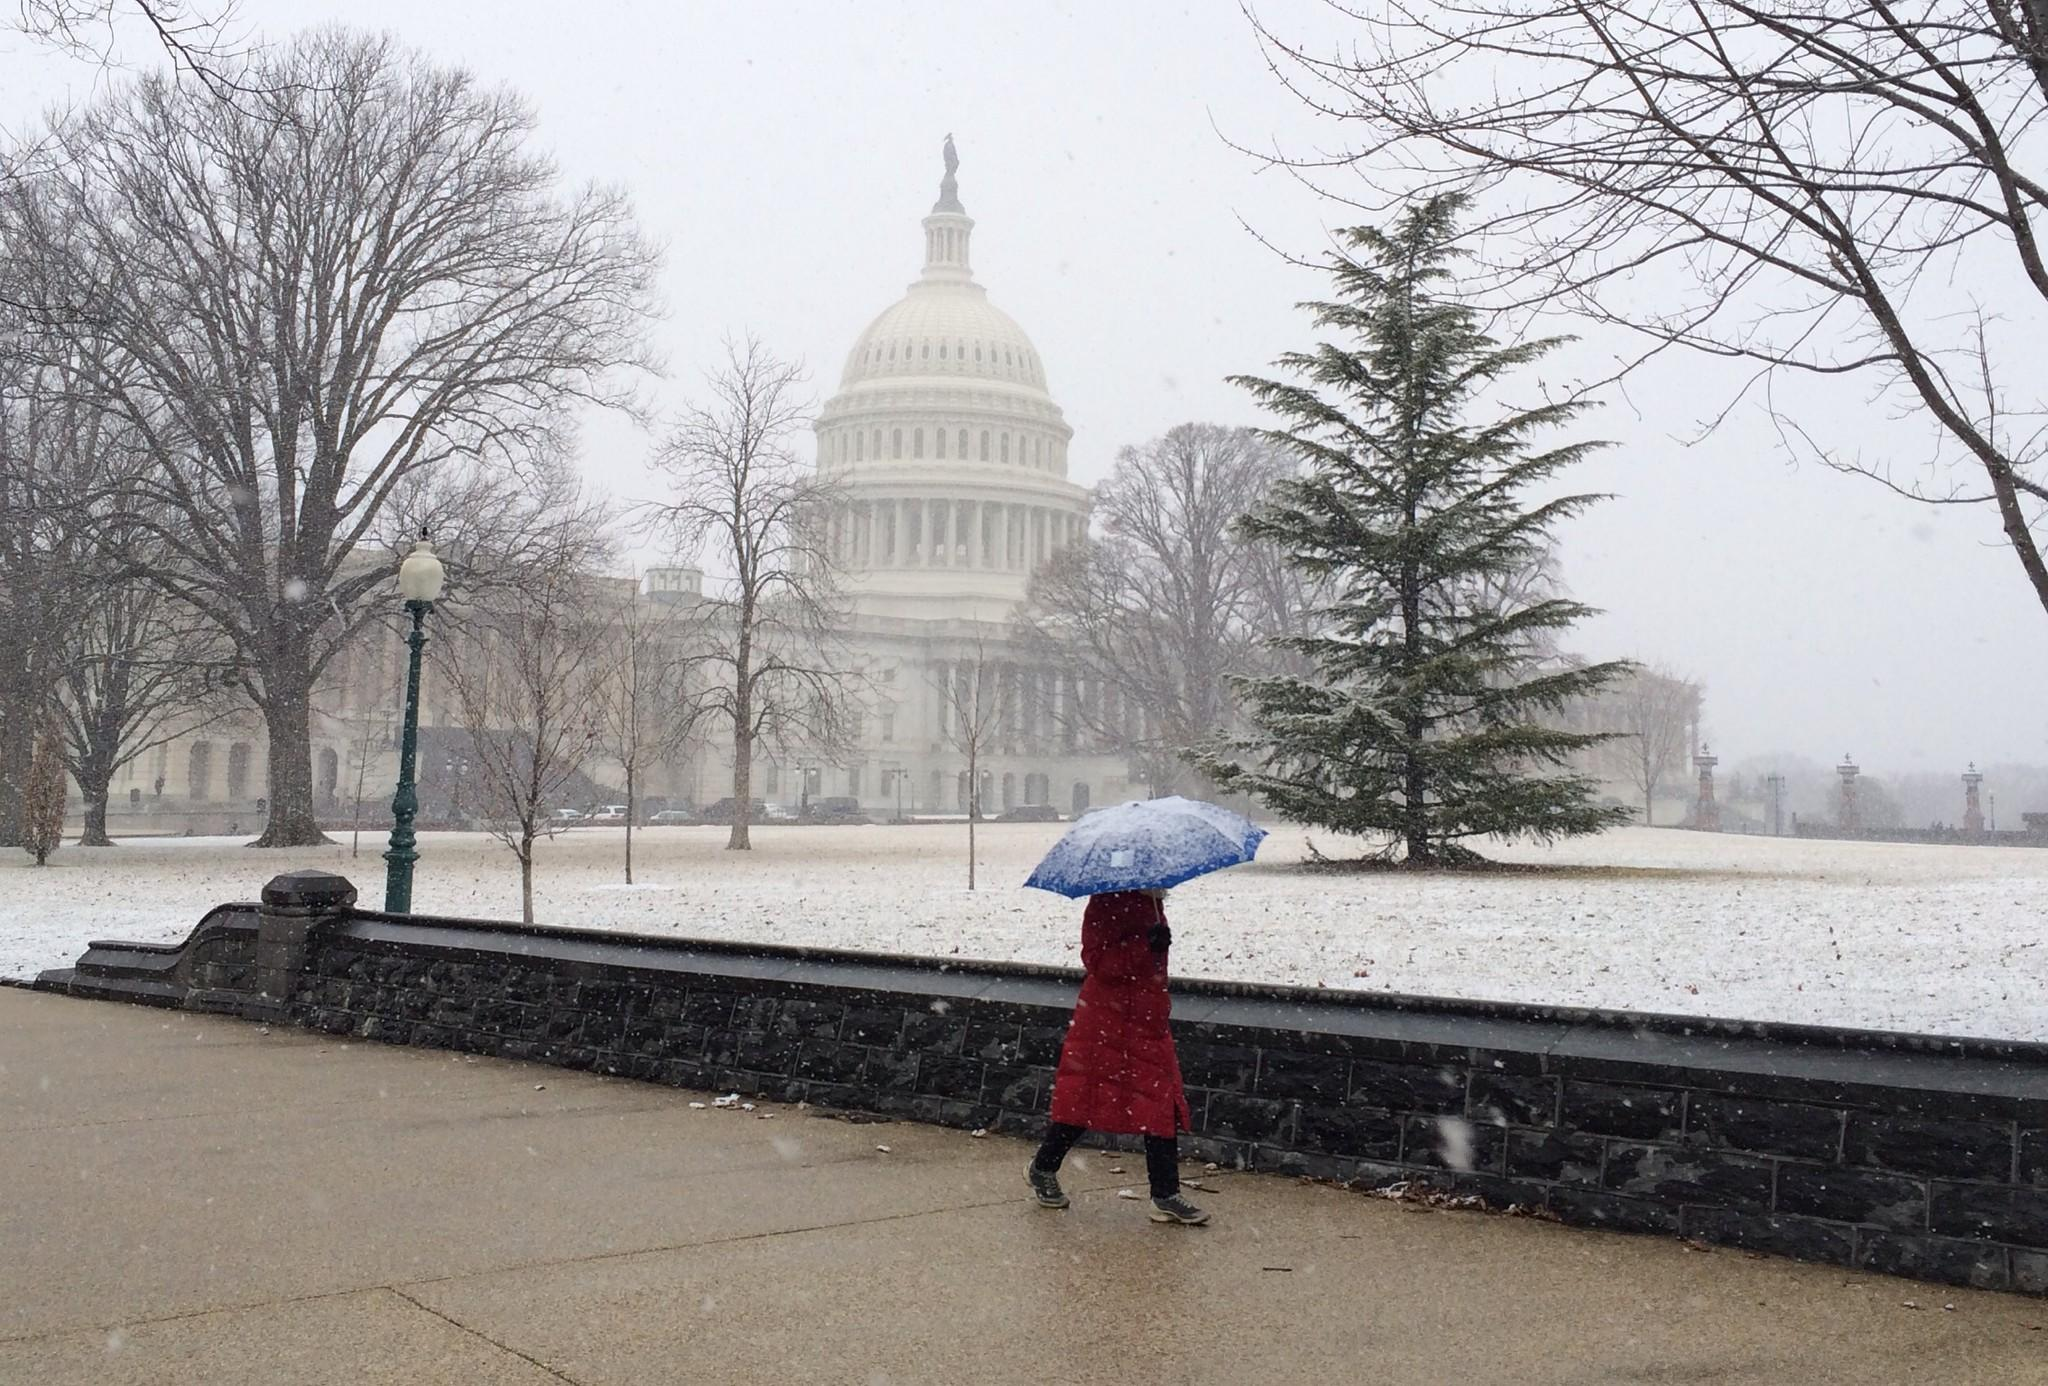 A woman walks in the snow past the US Capitol on February 25, 2014 in Washington.